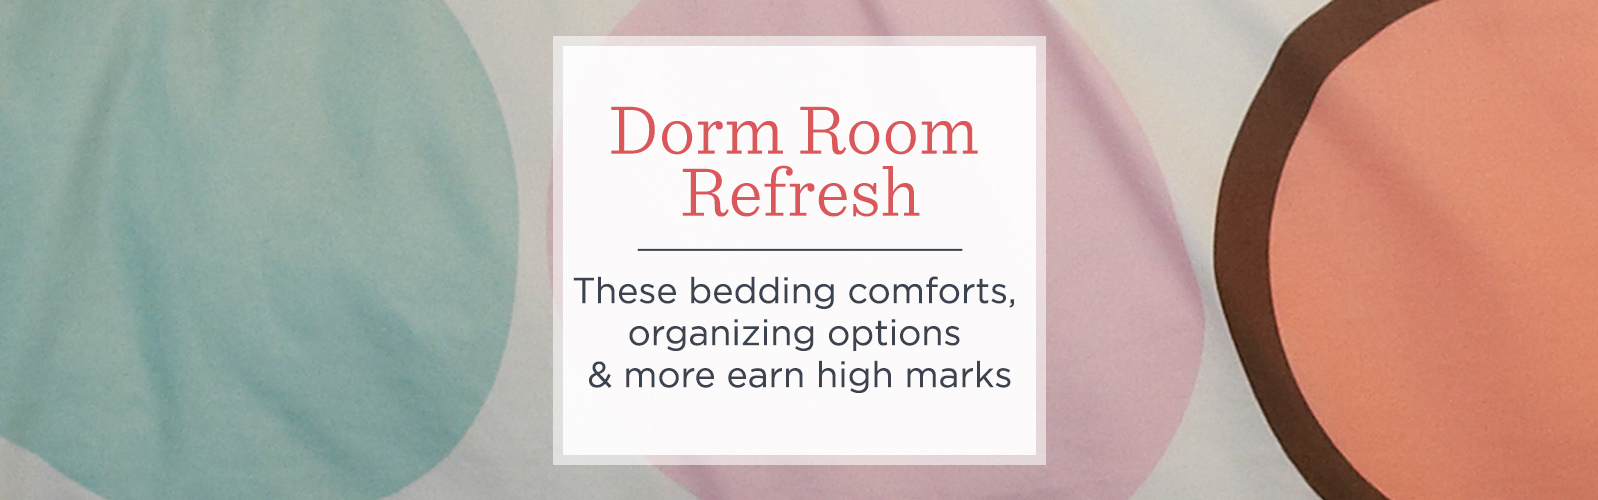 Dorm Room Refresh. These bedding comforts, organizing options & more earn high marks